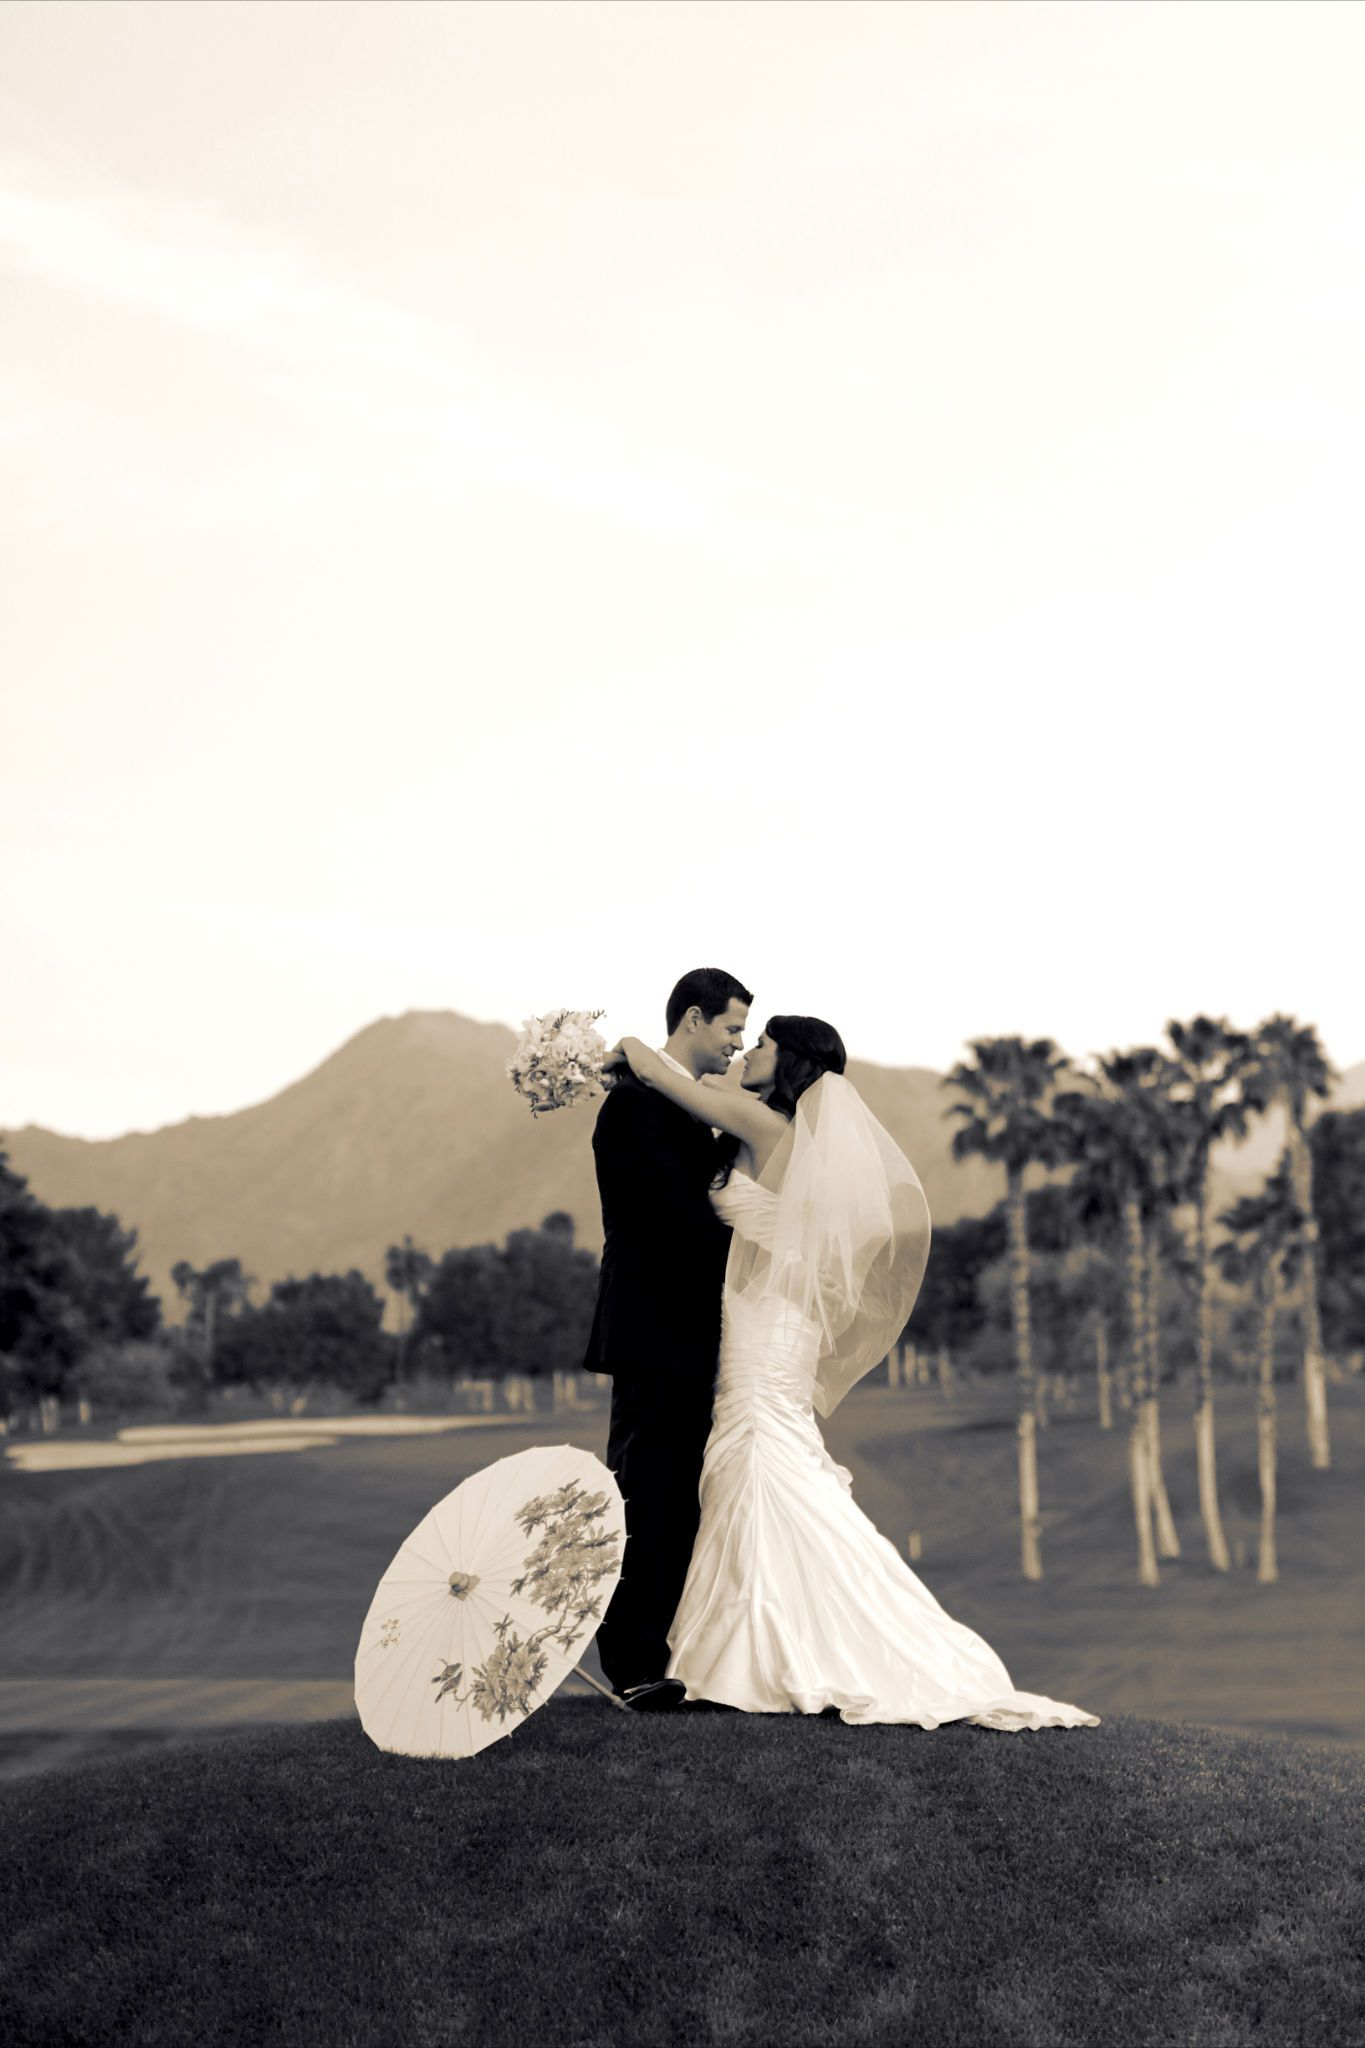 One of the most stunning weddings we have ever done. Check out our site to book your complementary consult: www.psplans.com